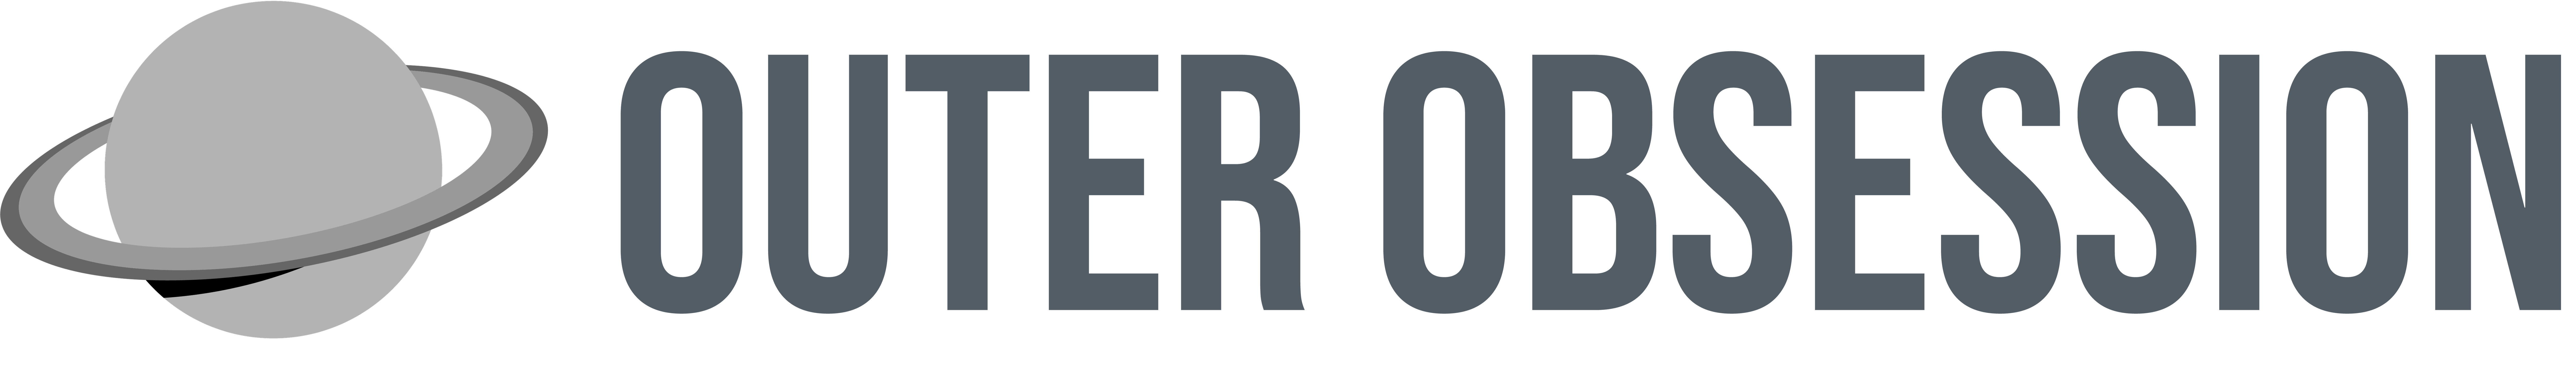 Outer Obsession logo branding